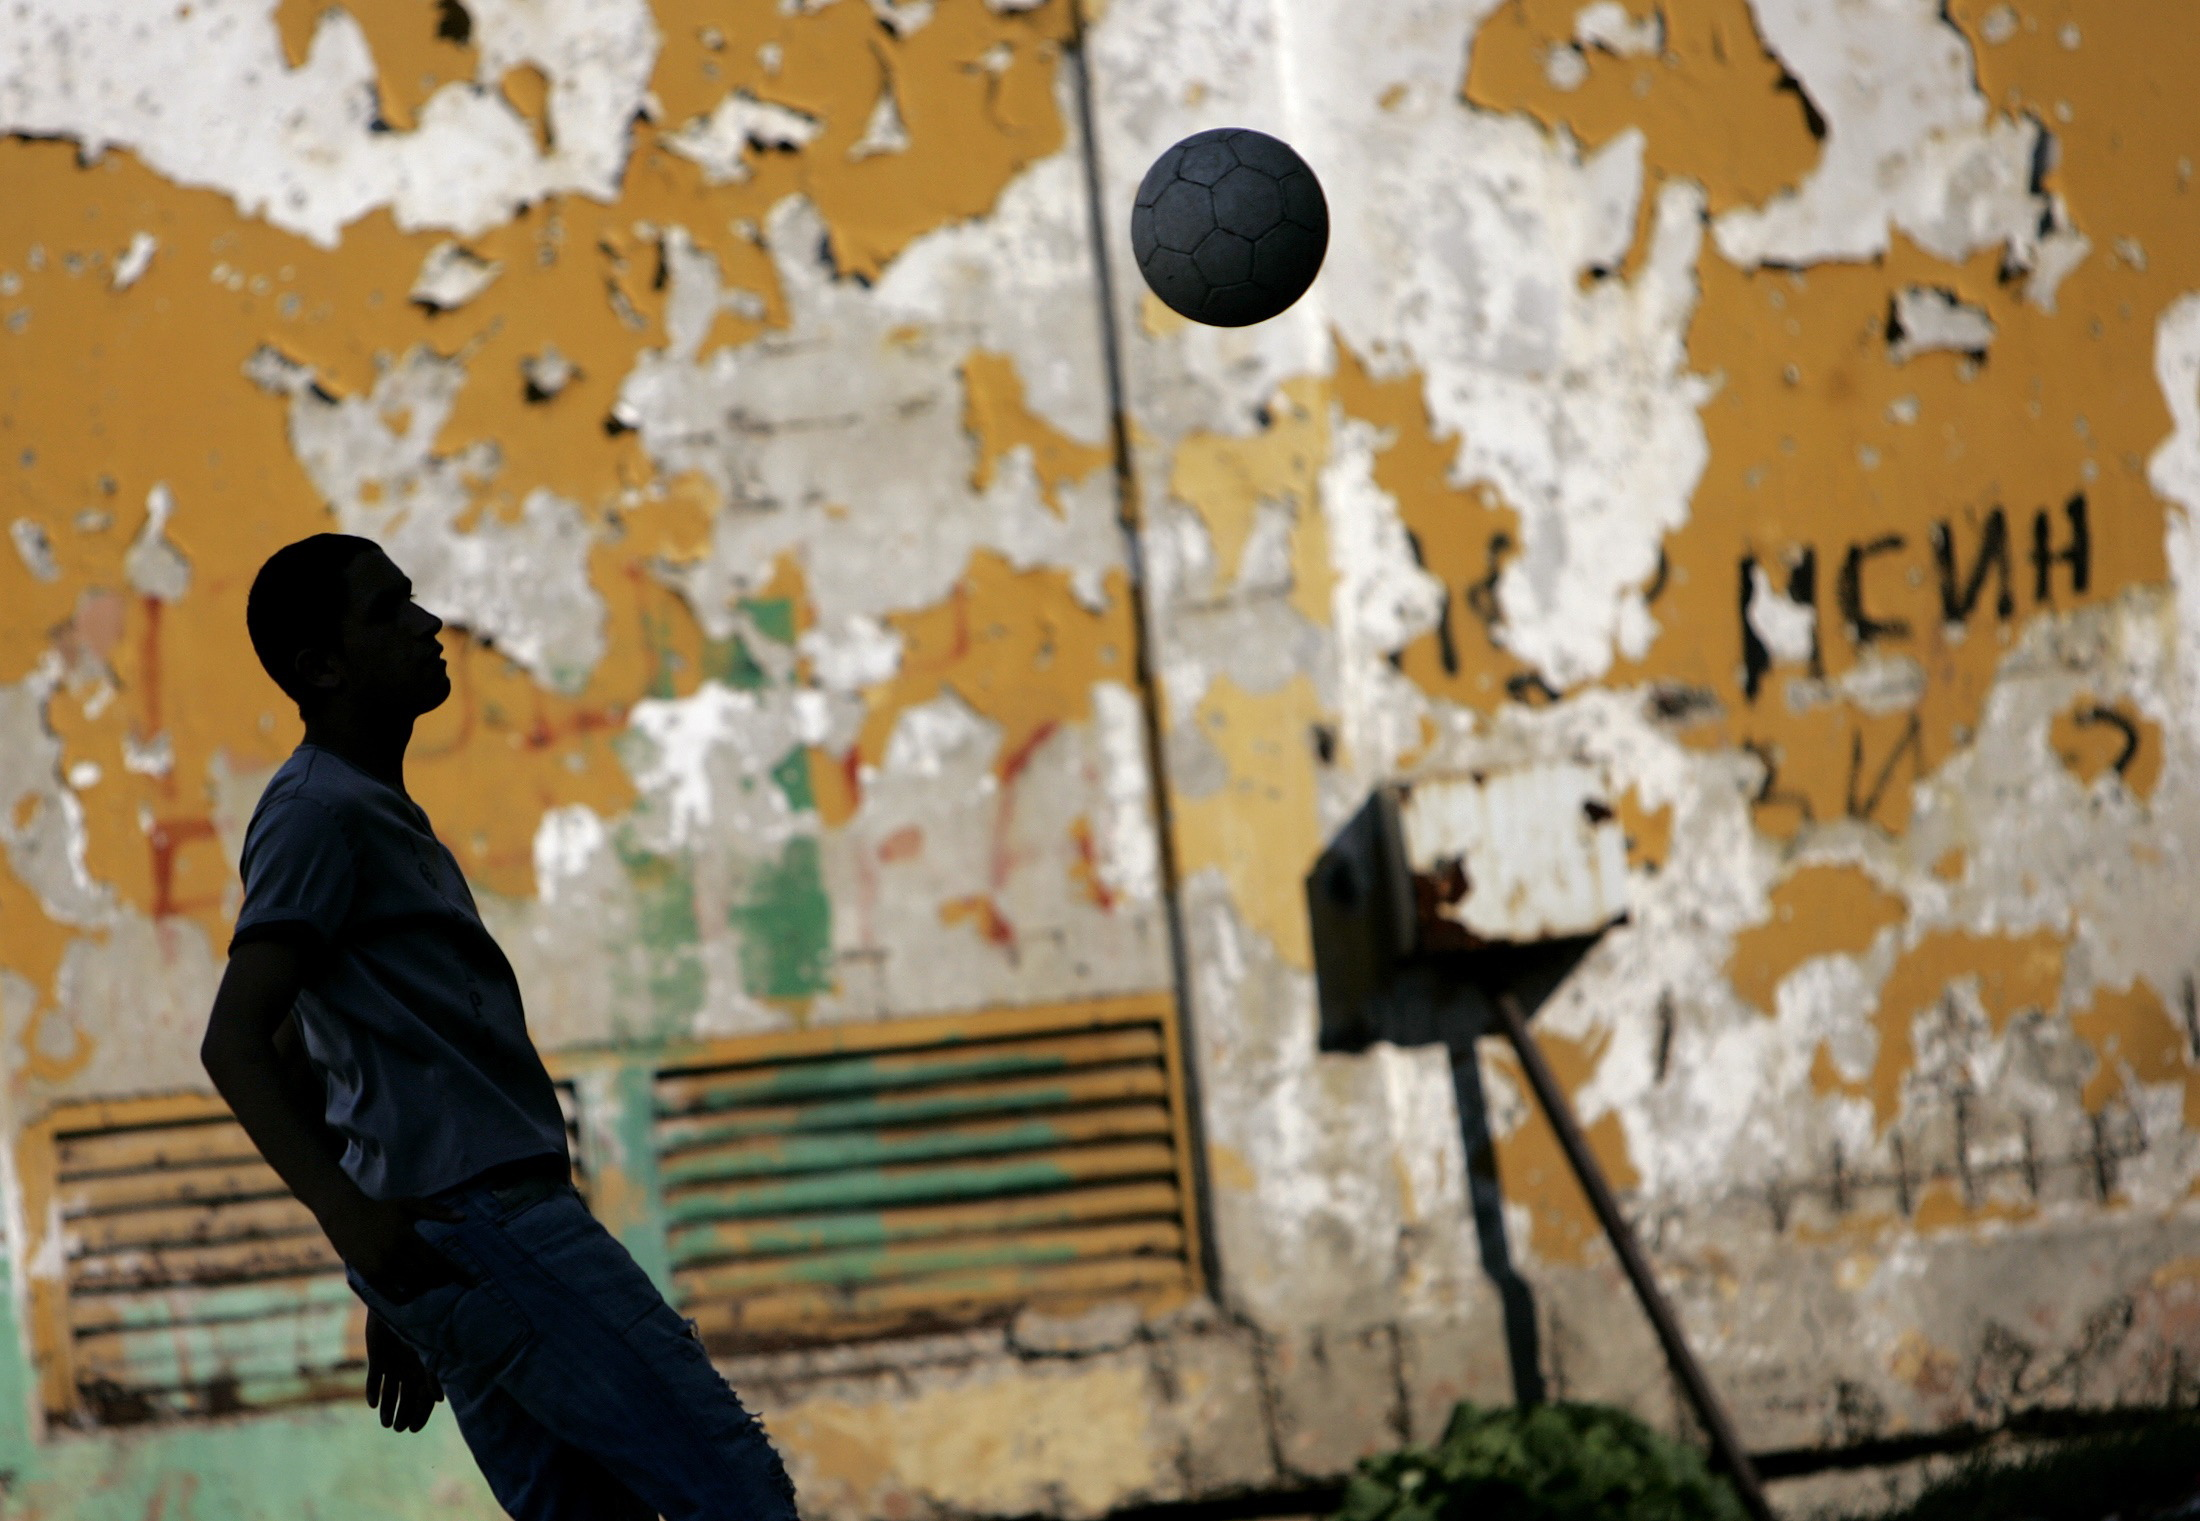 """A Bulgarian Roma boy plays soccer at a school in the Roma suburb of Fakulteta in Sofia, before the visit of U.S. billionaire investor George Soros, June 11, 2007. Soros is in Bulgaria to take part in an international initiative """"Decade of Roma Inclusion"""". Eight south eastern European states launched a 10-year initiative in 2005 to help millions of Roma Gypsies escape the discrimination, segregation and poverty that has isolated them on the margins of mainstream society. REUTERS/Stoyan Nenov (BULGARIA) Picture Supplied by Action Images *** Local Caption *** 2007-06-11T171139Z_01_SOF19_RTRIDSP_3_BULGARIA-SOROS.jpg"""